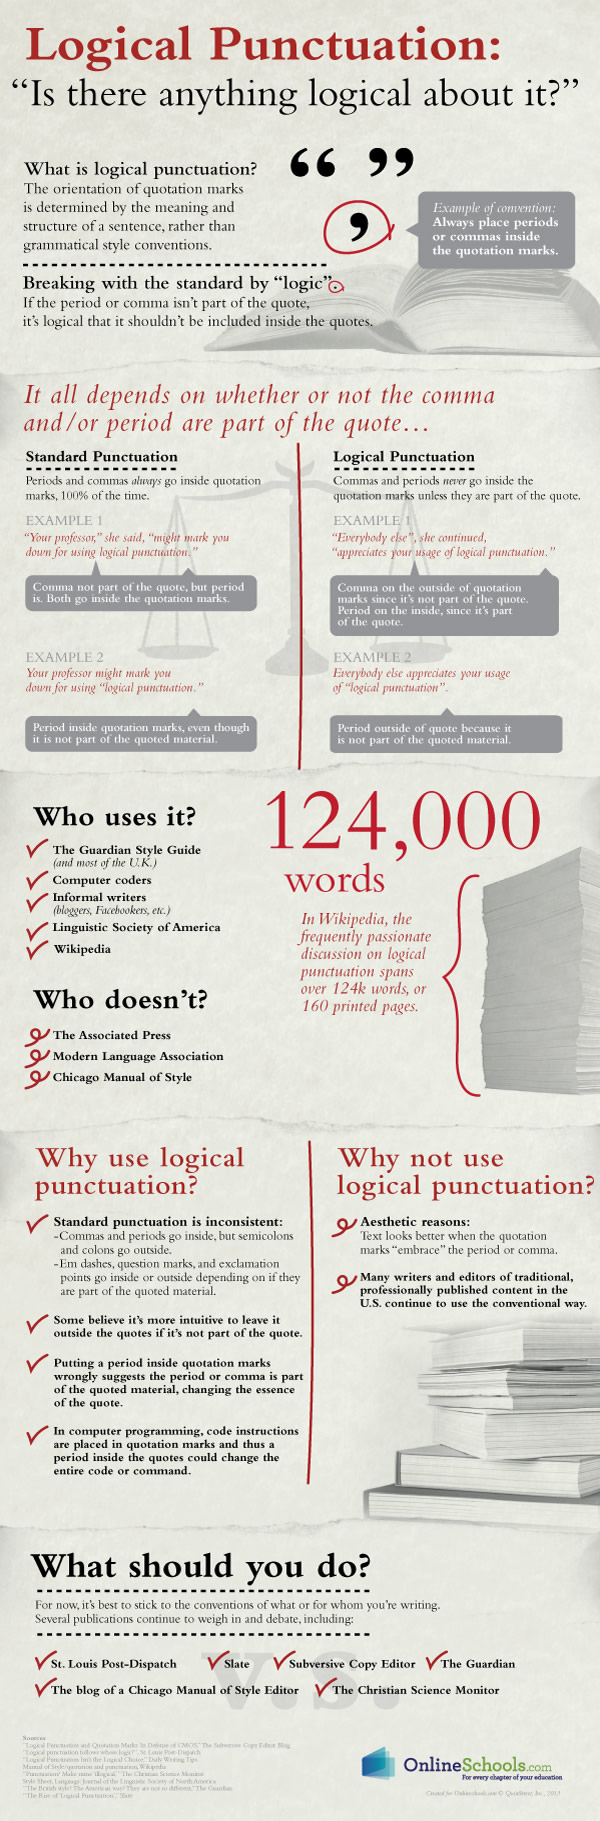 Logical Punctuation (Infographic)